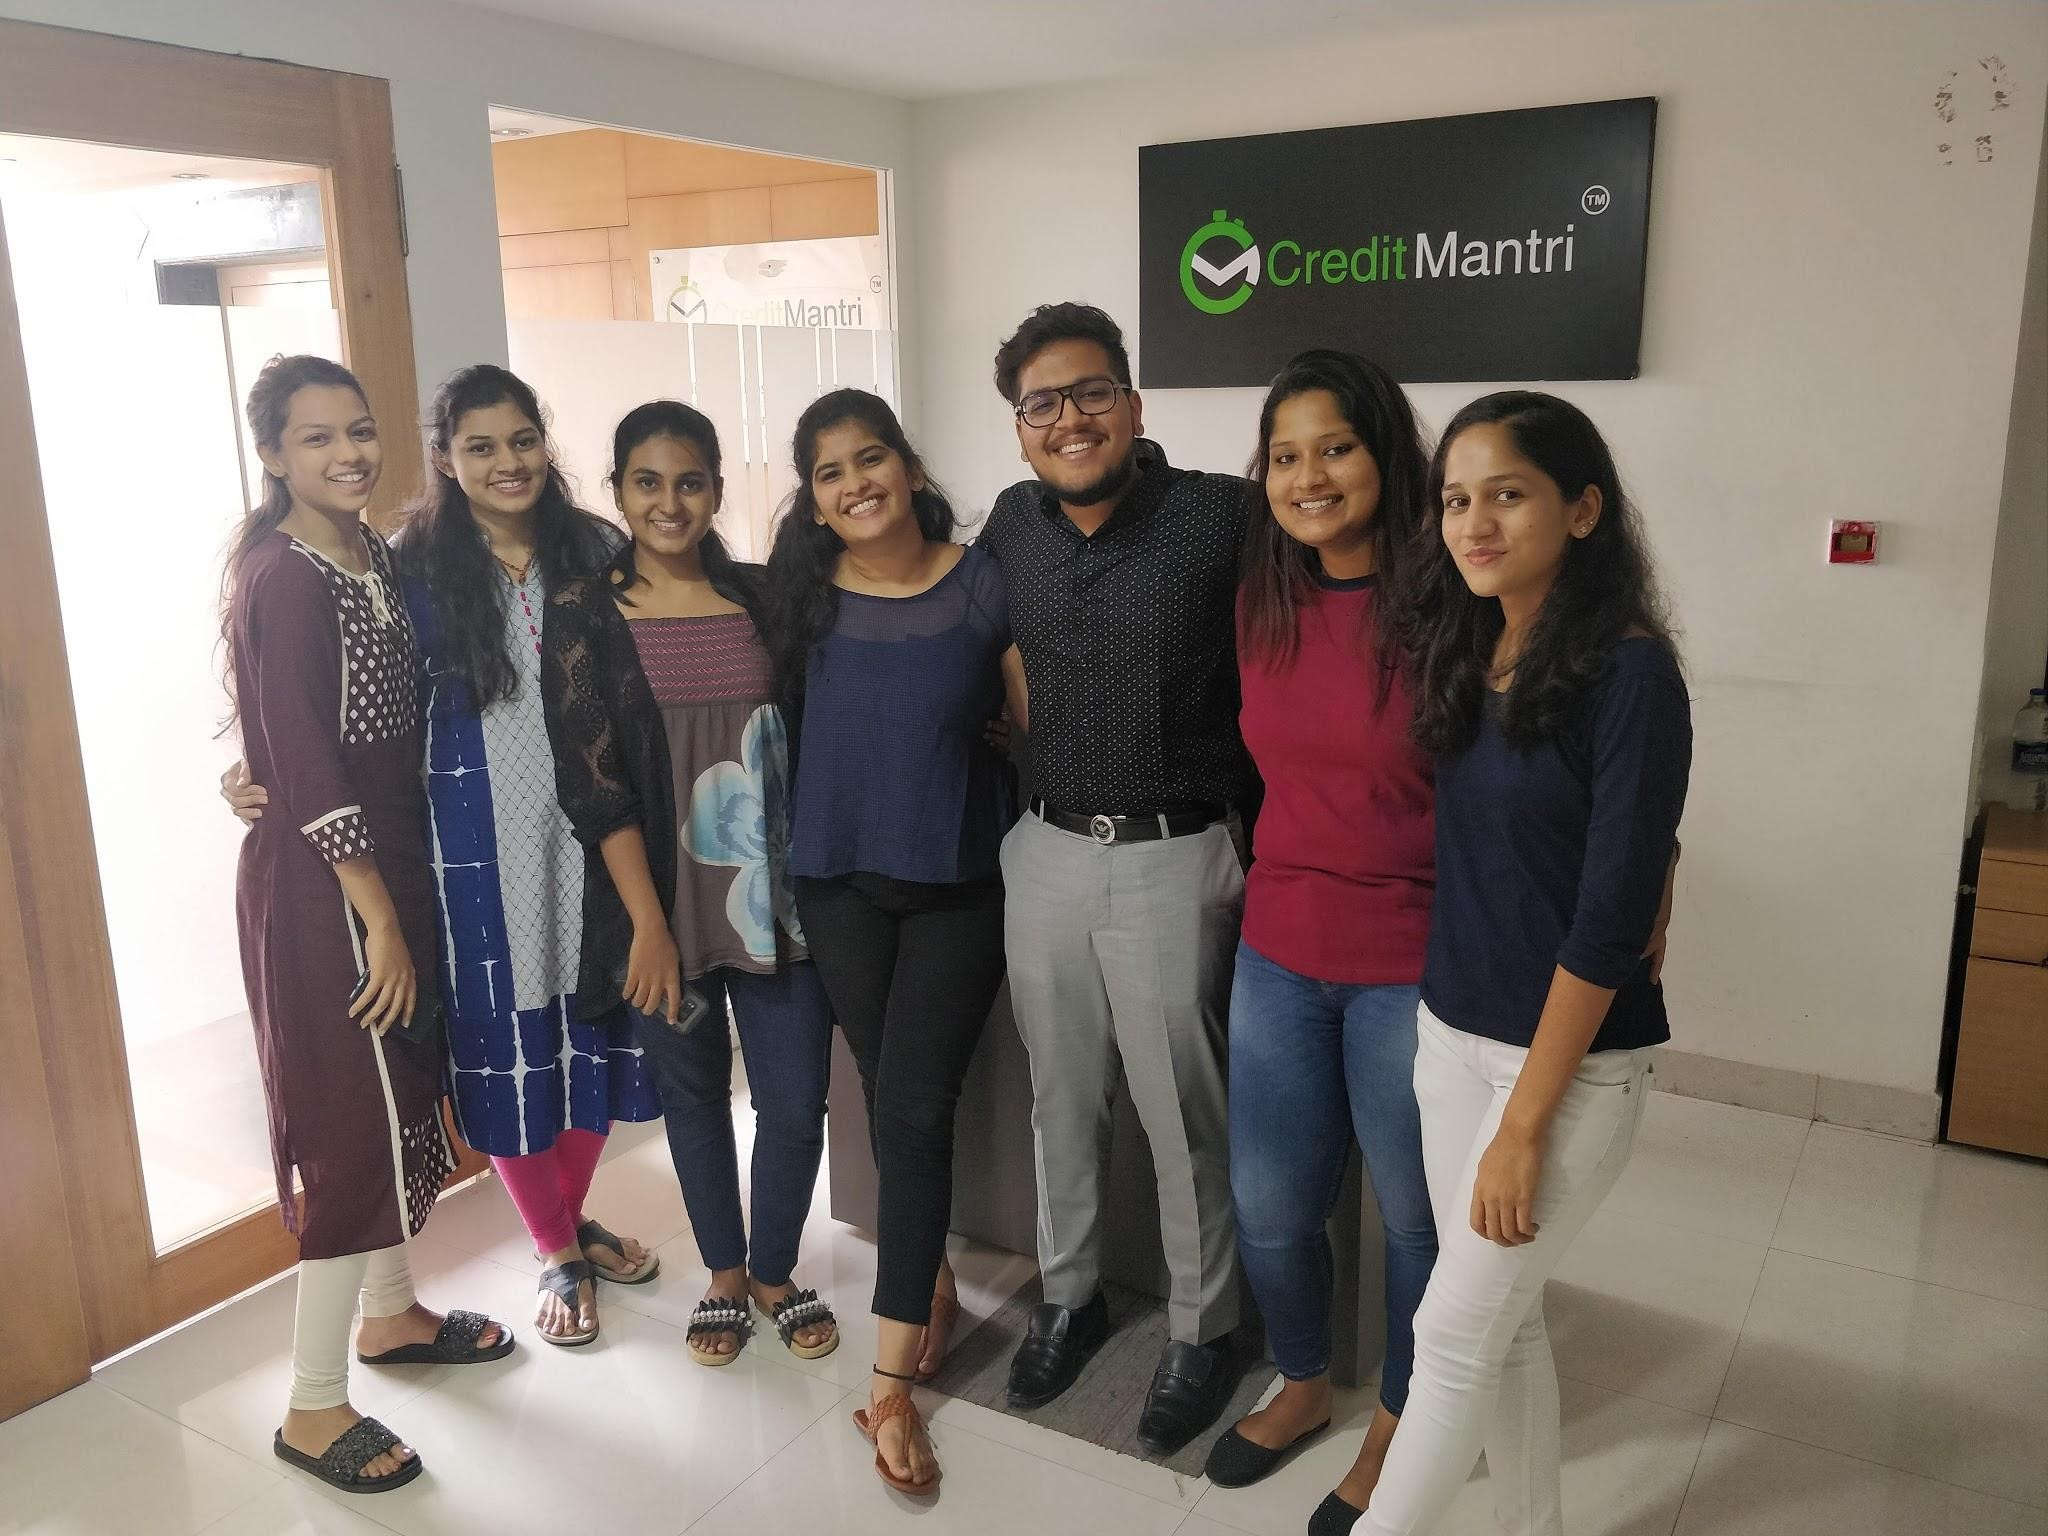 Internship Experience at CreditMantri